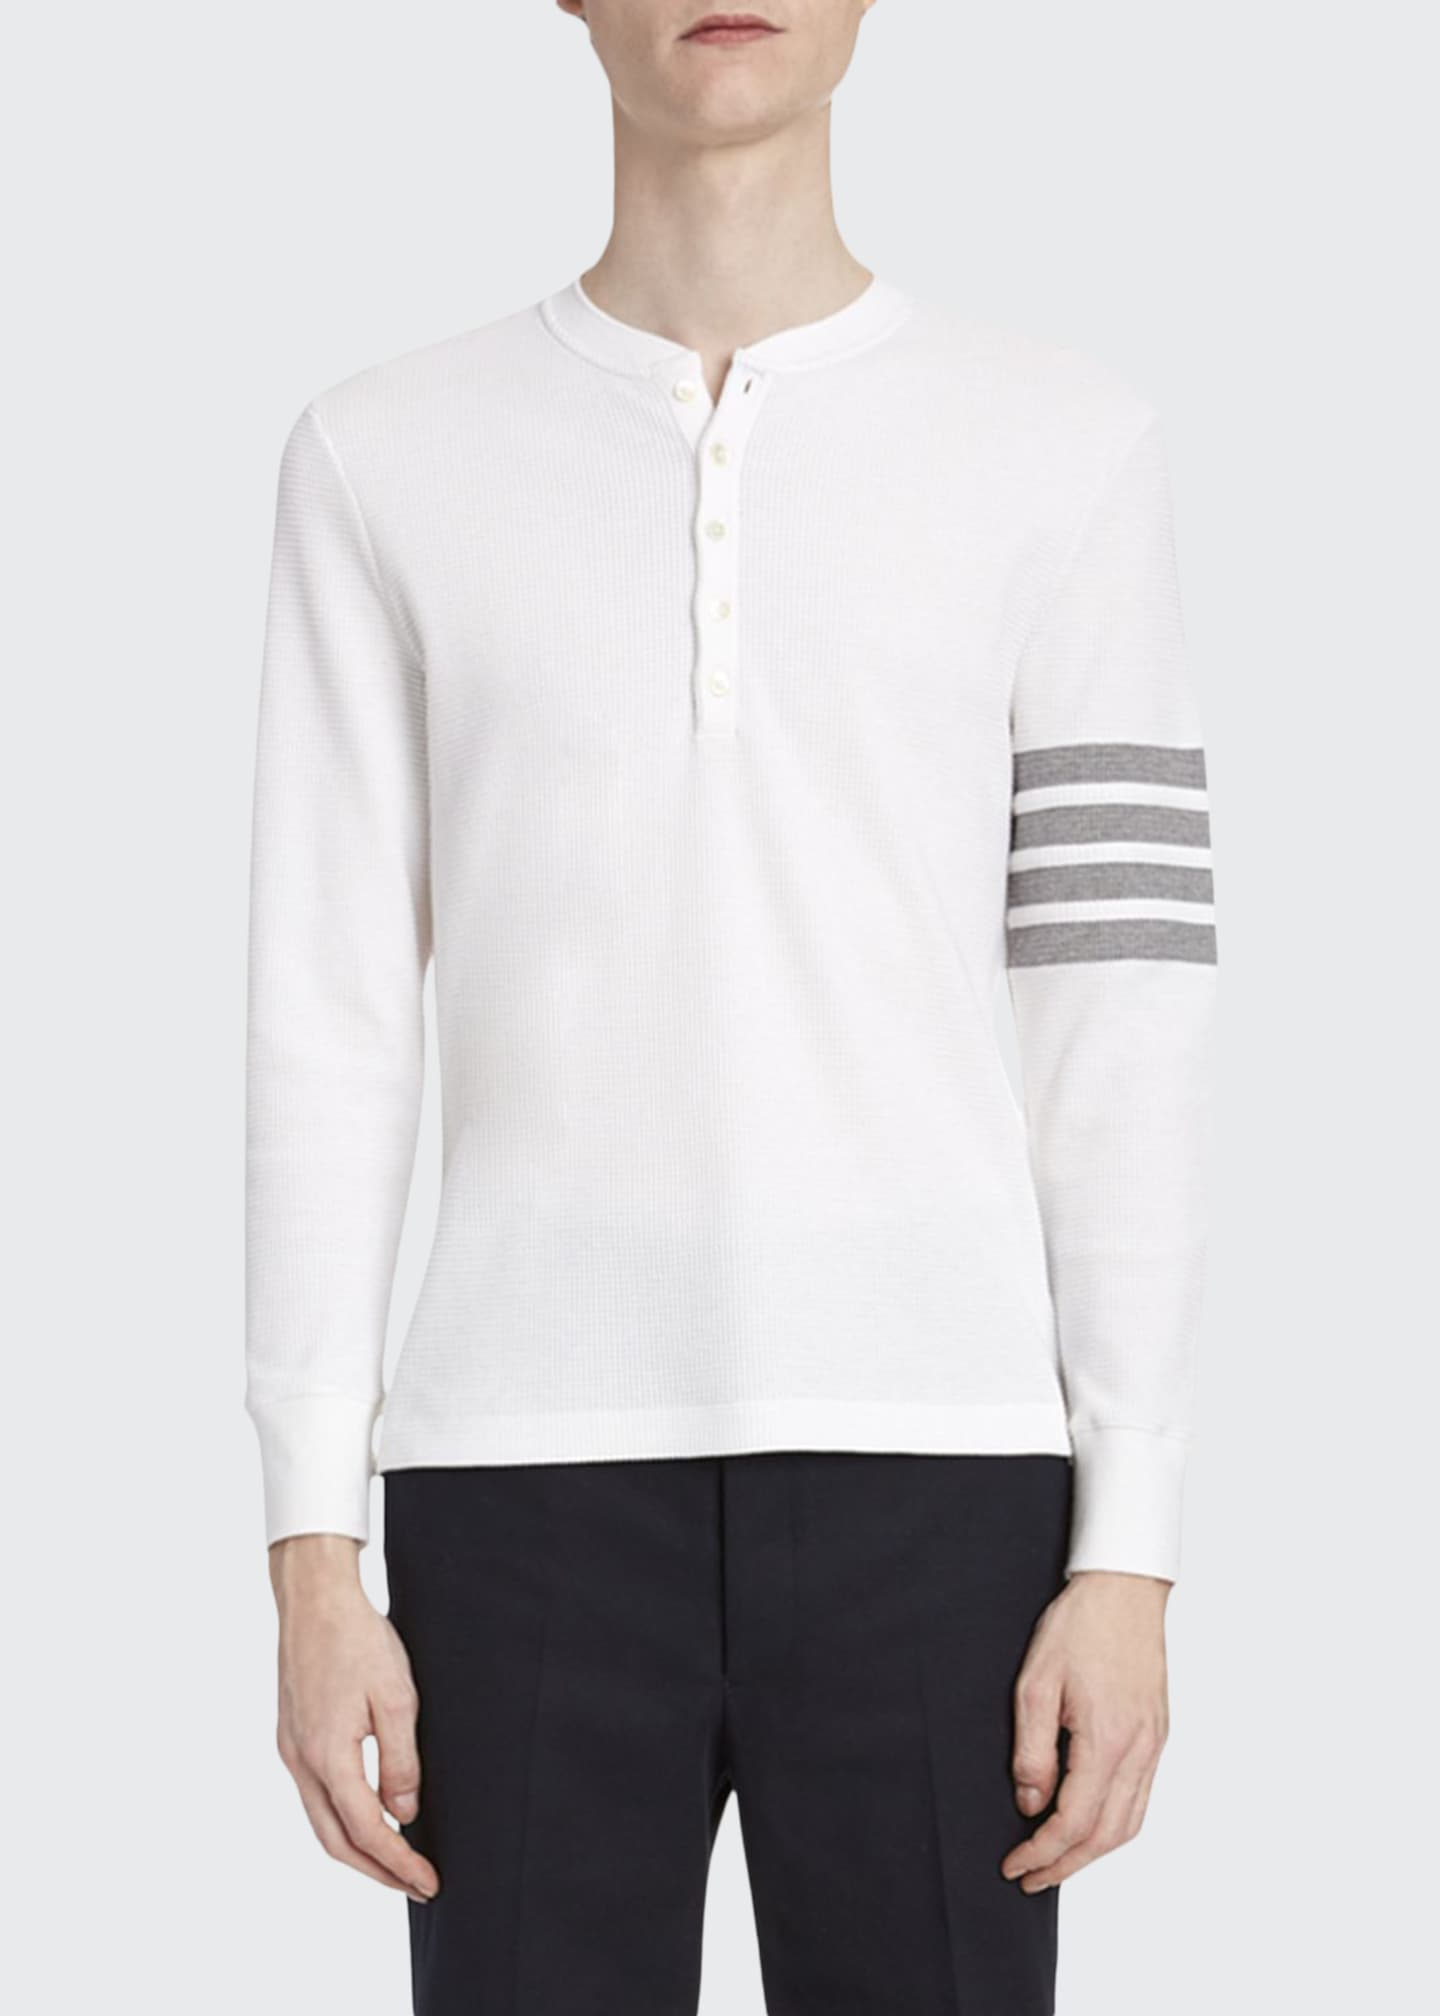 Thom Browne Men's Waffle-Knit Henley Shirt with 4-Bar